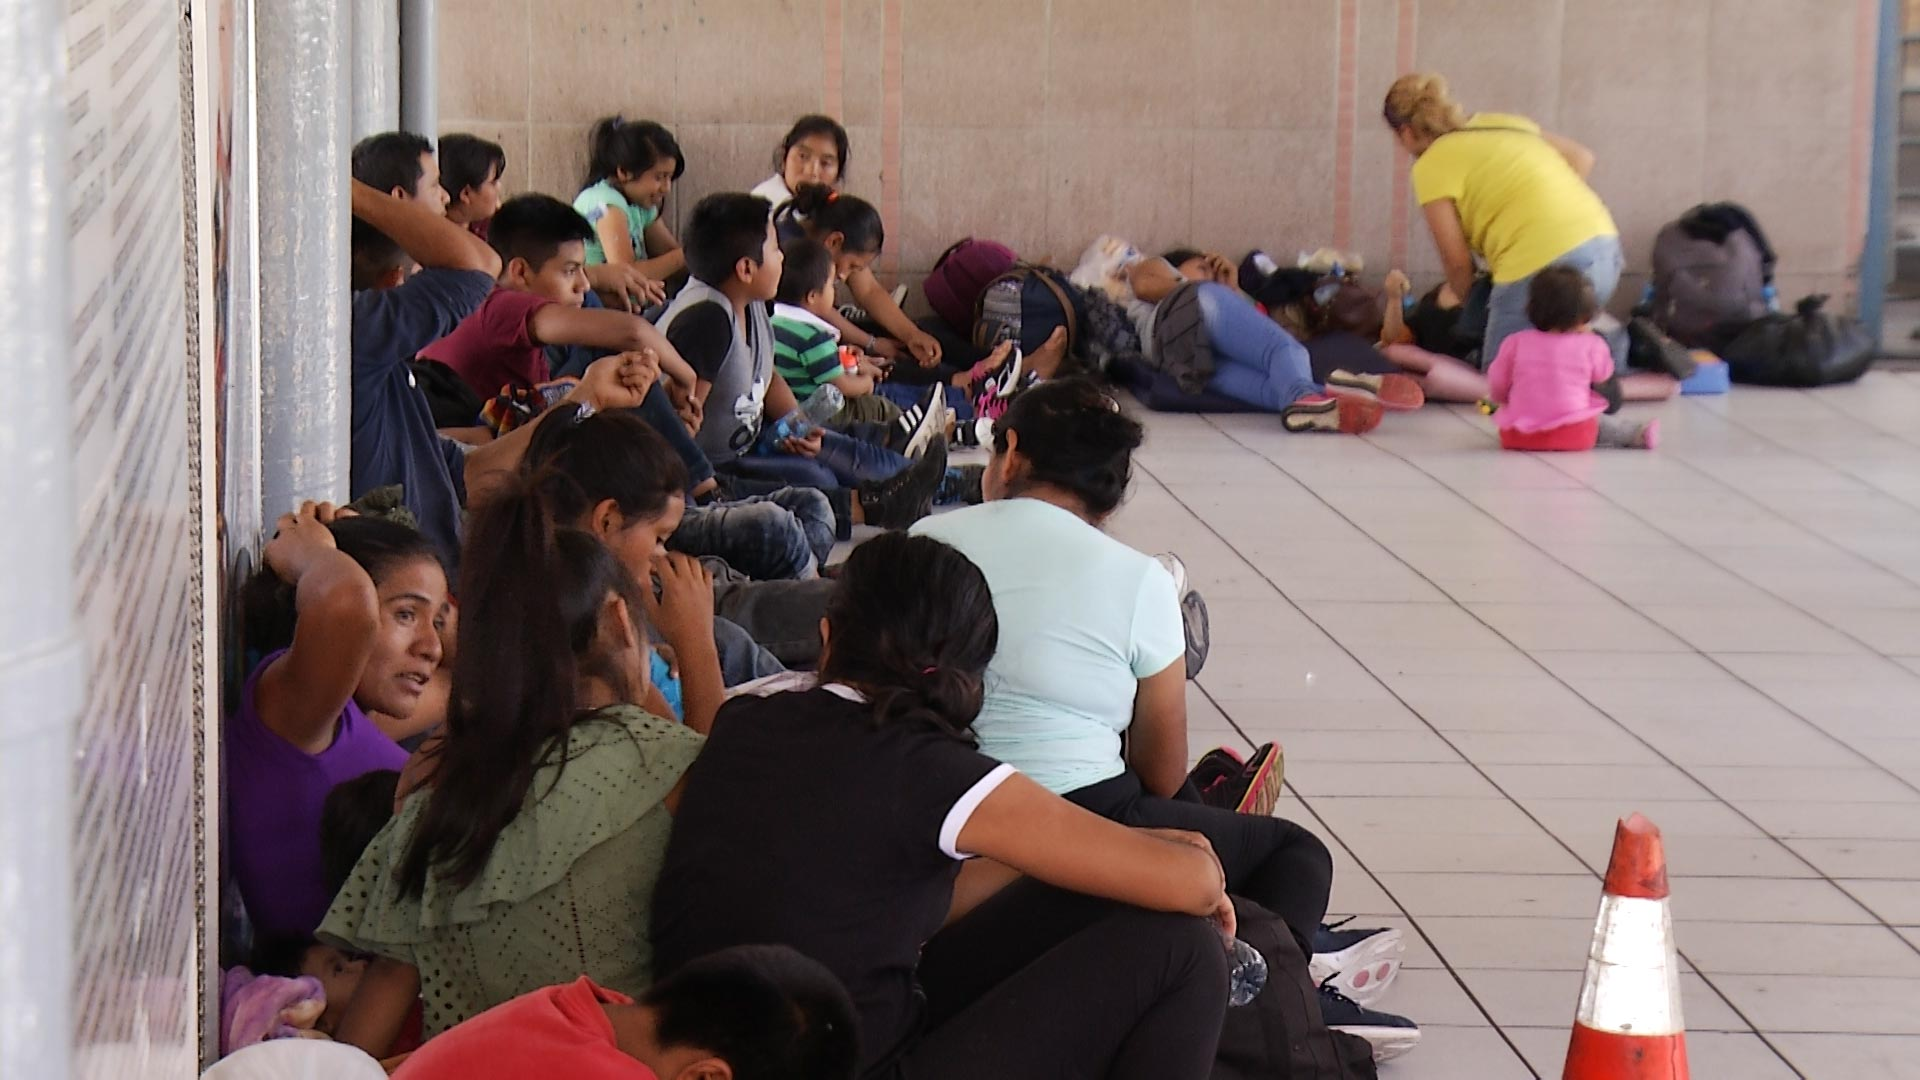 Families seeking asylum await processing outside the port of entry in Nogales, Sonora on September 4, 2018.